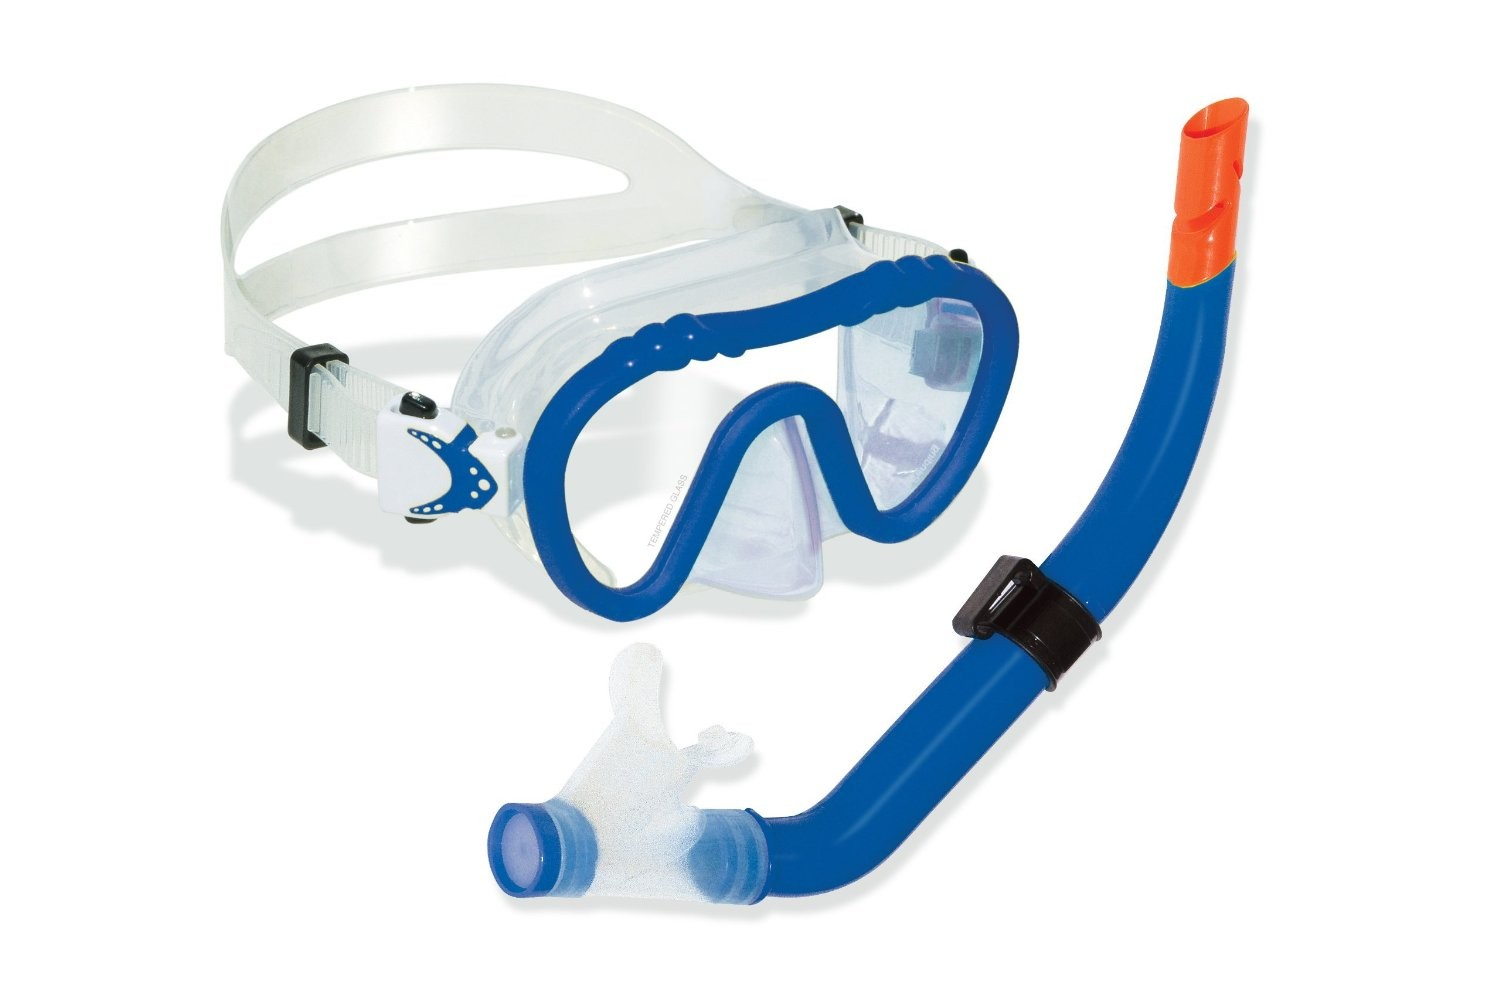 Swimline Divesite Silicone Mask and Snorkel Set (Kids Size) - Blue